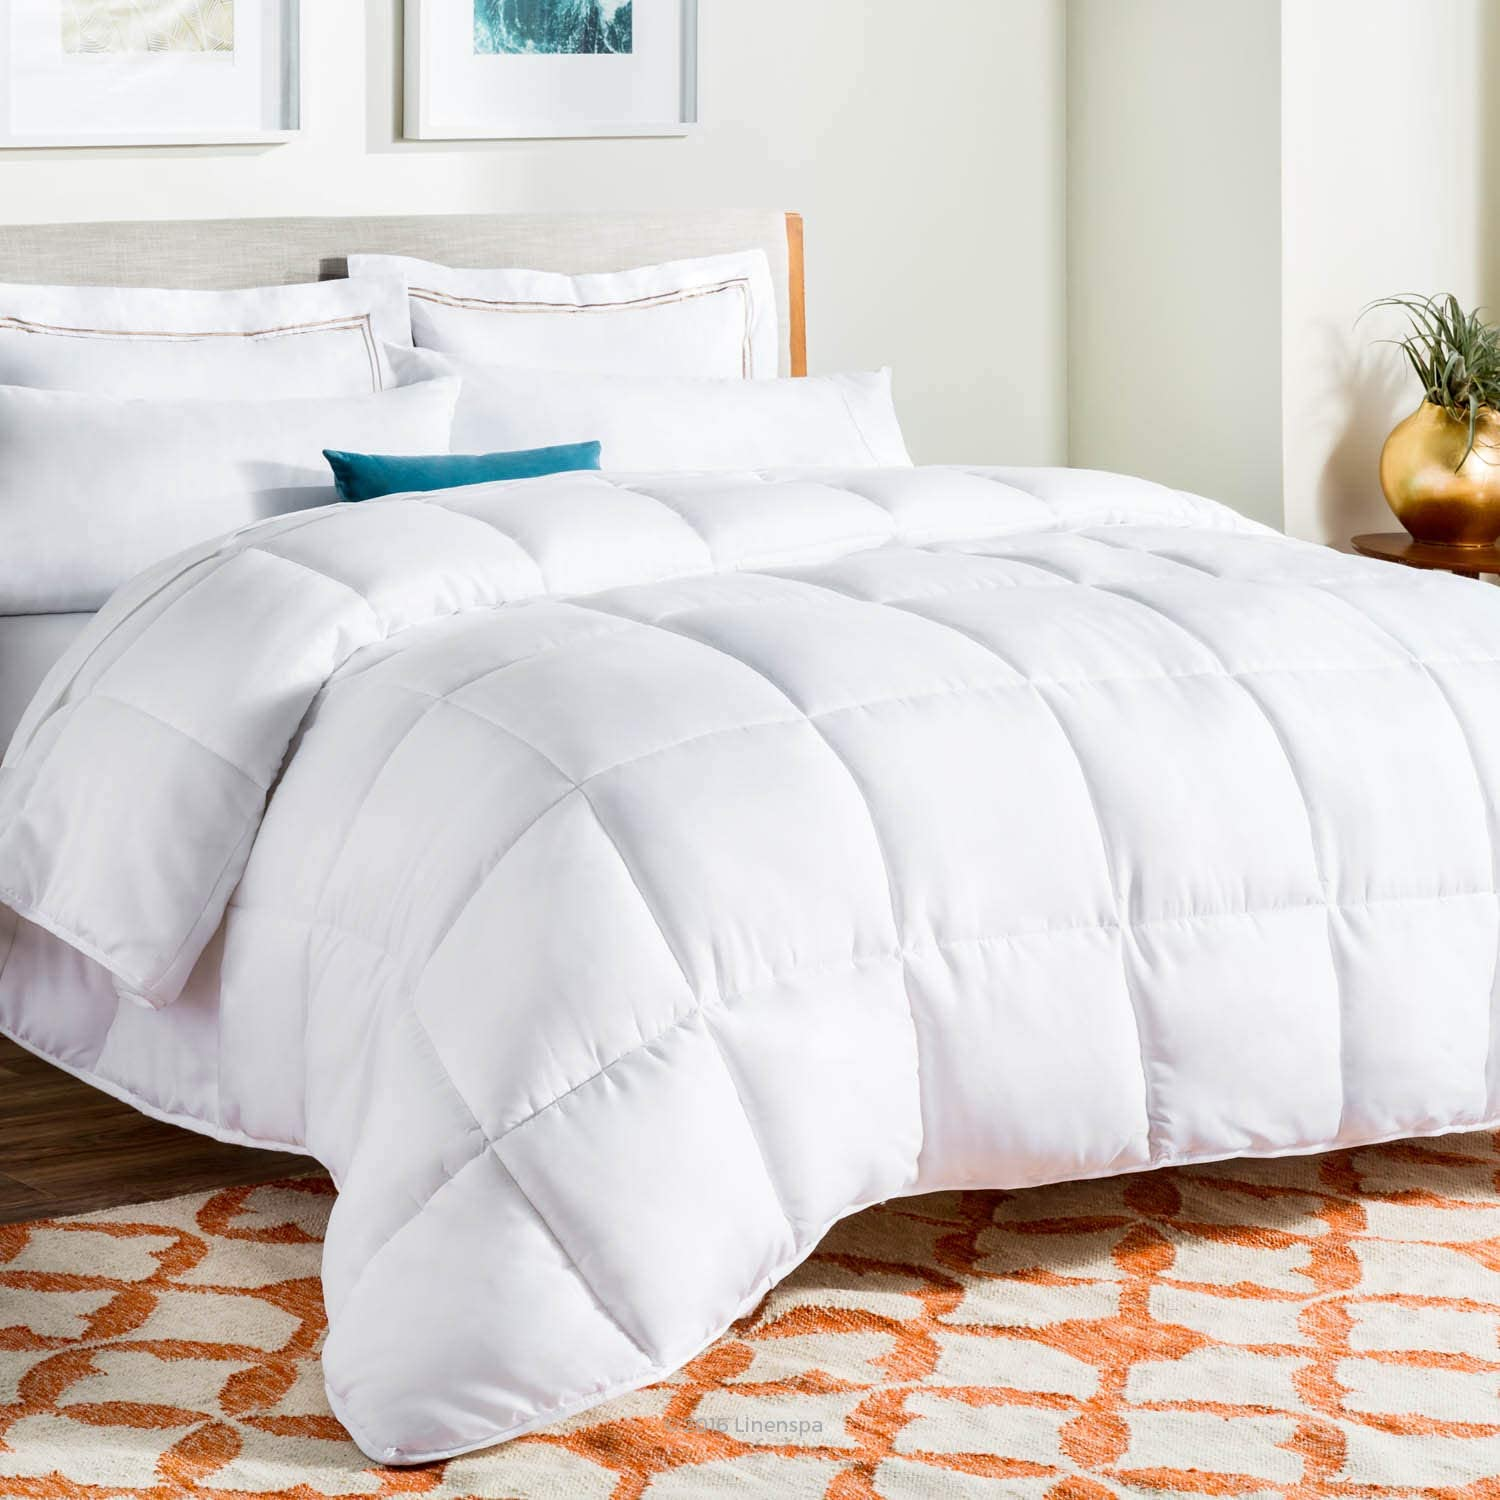 Linenspa All Season White Down Alternative Quilted Comforter Corner Duvet Tabs Hypoallergenic Plush Microfiber Fill Machine Washable Duvet Insert Or Stand Alone Comforter Queen Home Kitchen